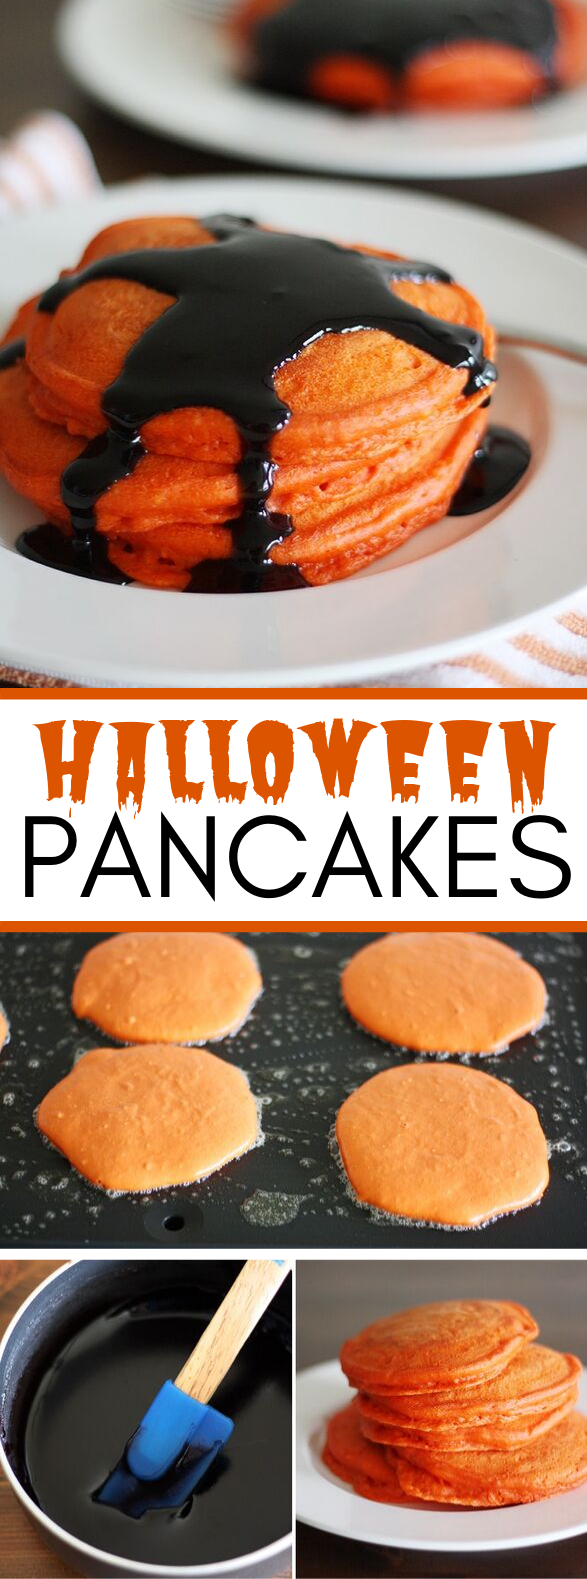 Halloween Pancakes #breakfast #vegetarian